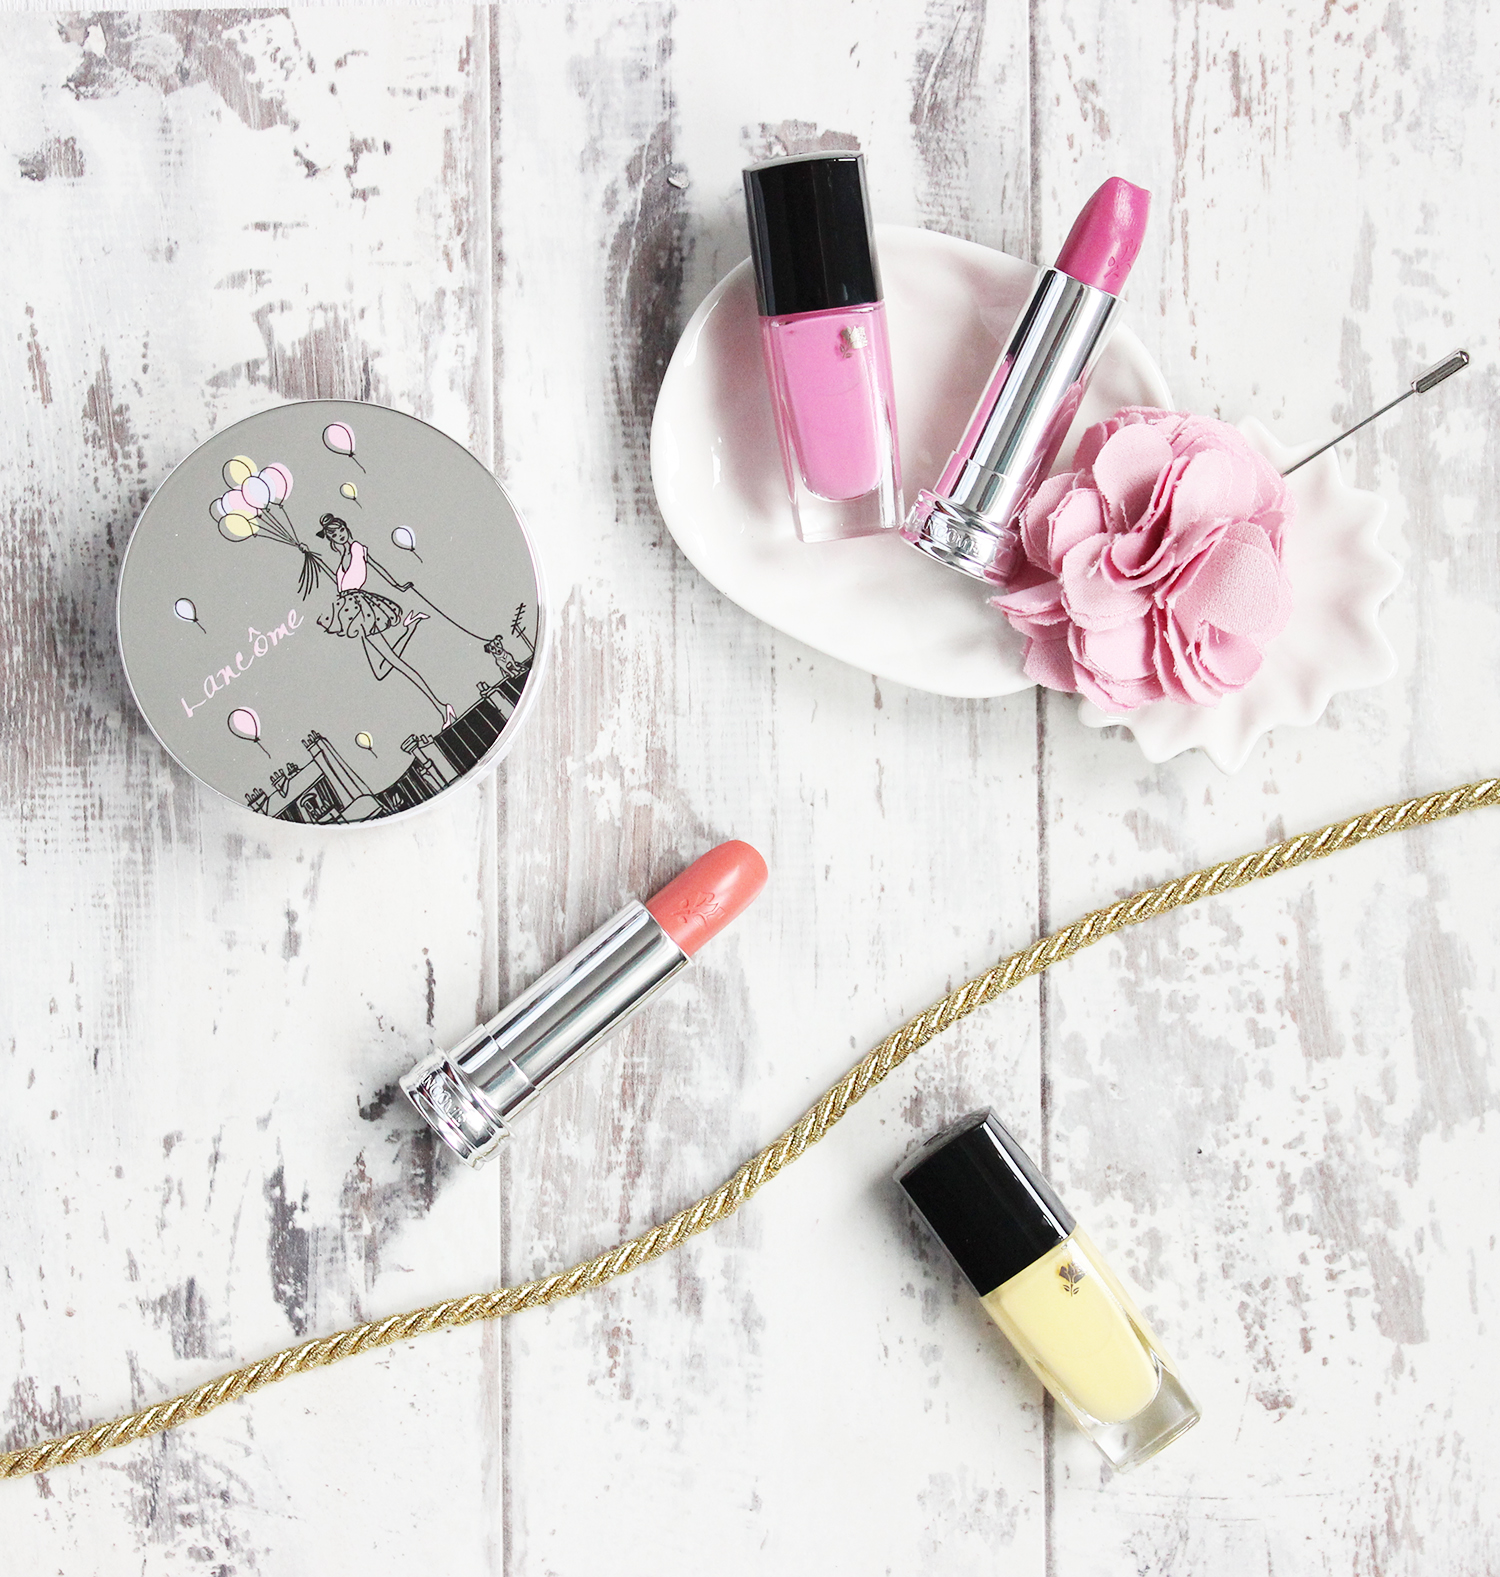 Lancome Spring 2016 collection 'From Lancome with Love' review